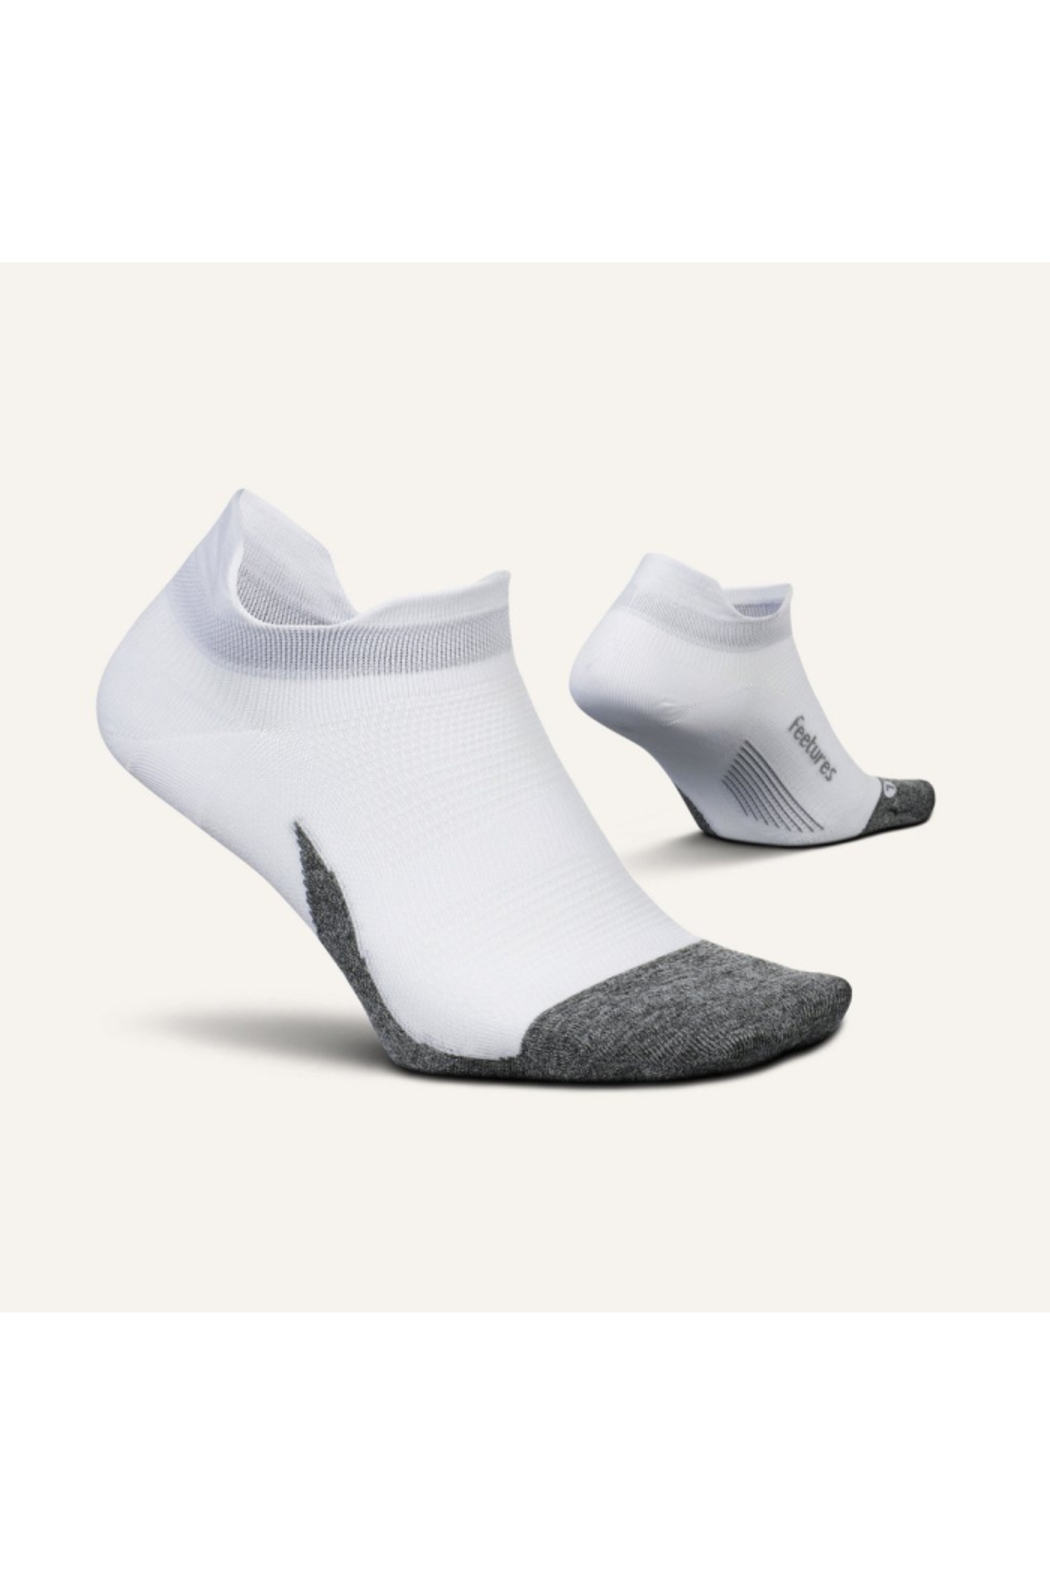 Feetures Elite Ultra Light No Show Tab Sock in White - Front Full Image